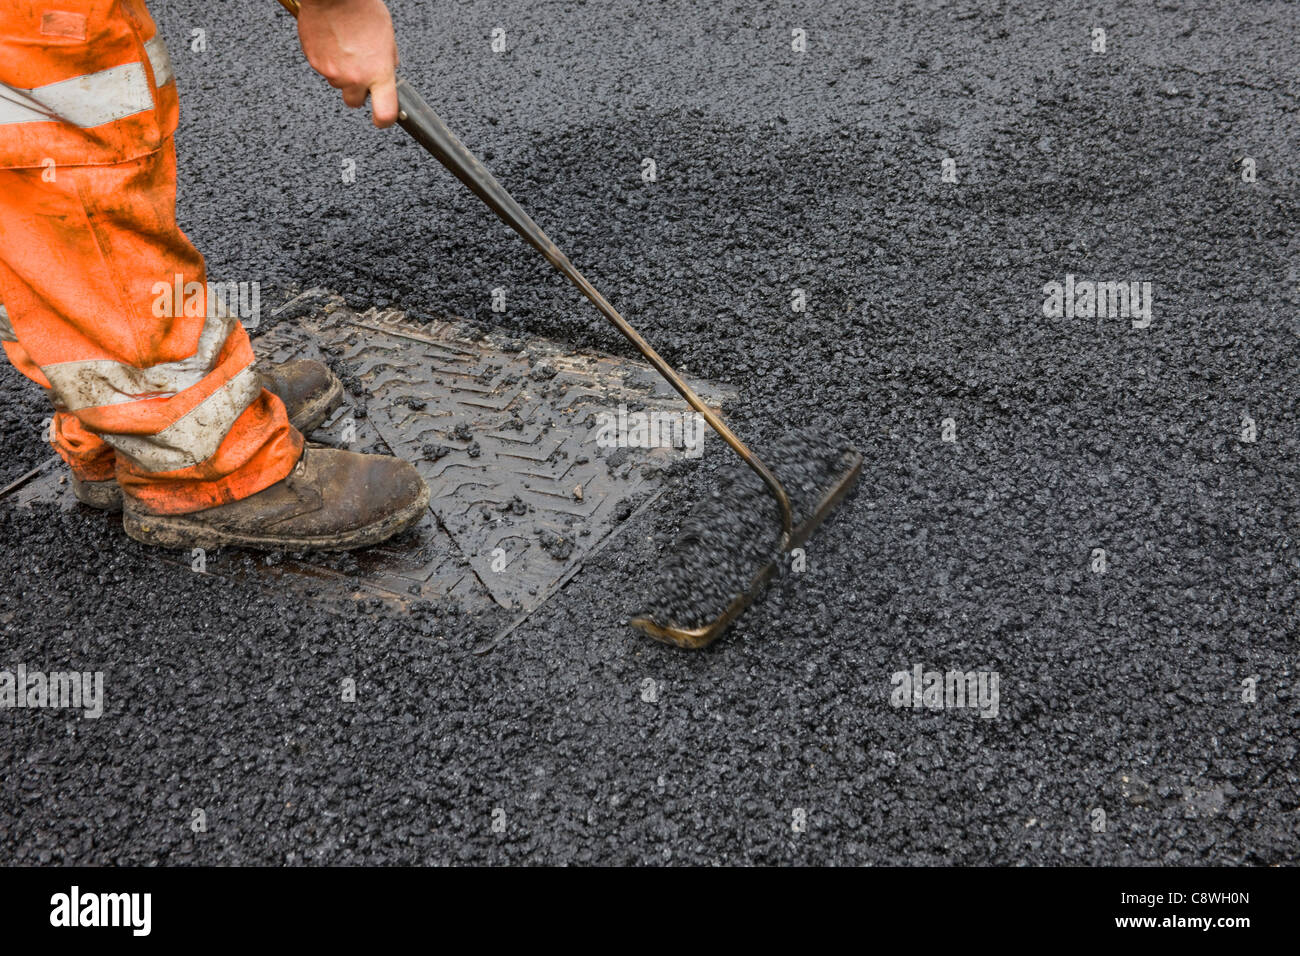 Asphalt being raked around a manhole cover to fill gaps in surface, of newly laid road, after protective felt removed. - Stock Image